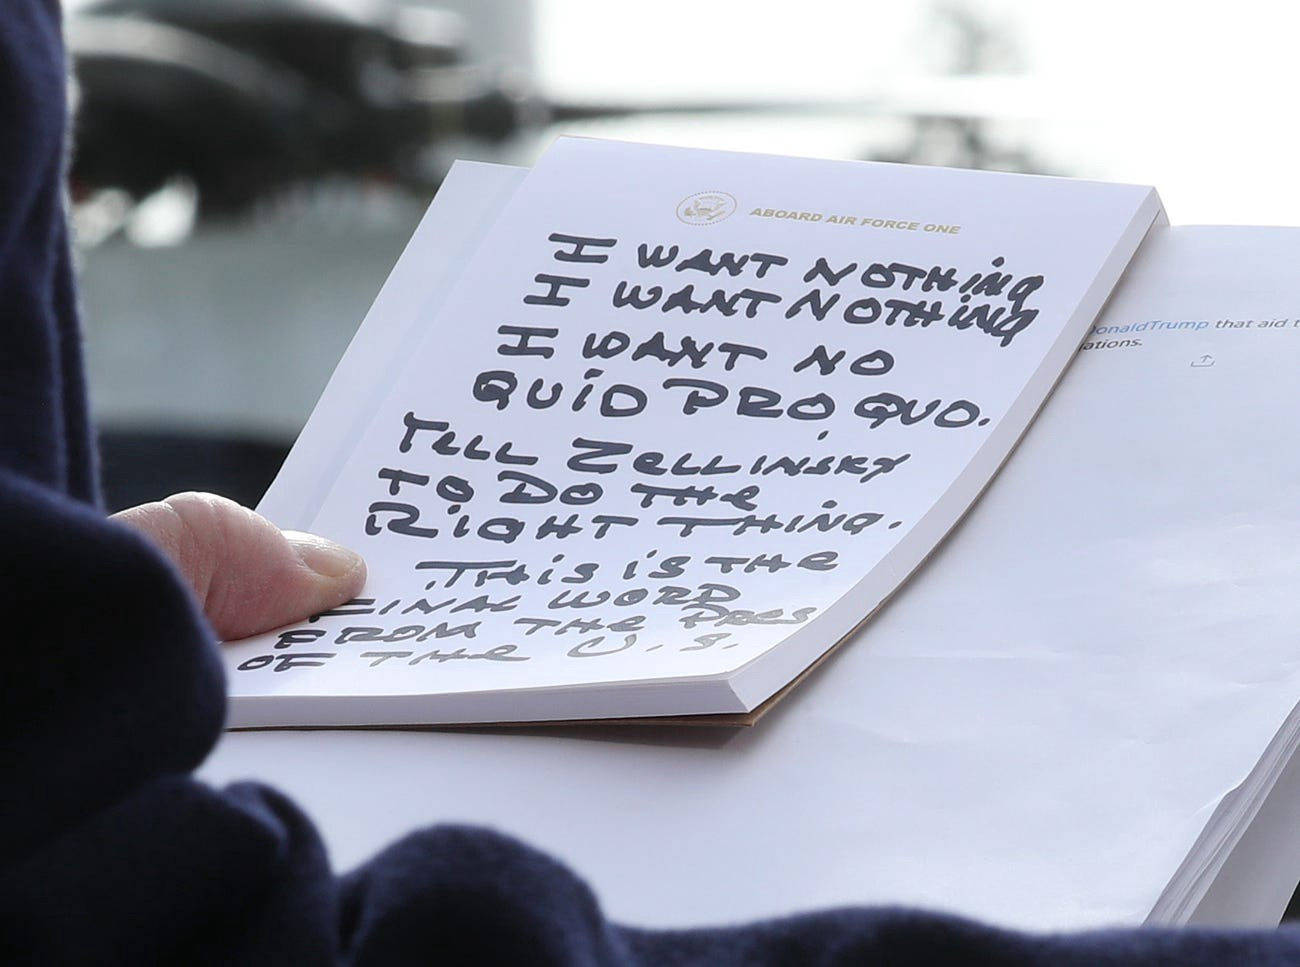 Donald Trump holds his notes while speaking to the media about the impeachment inquiry hearings.